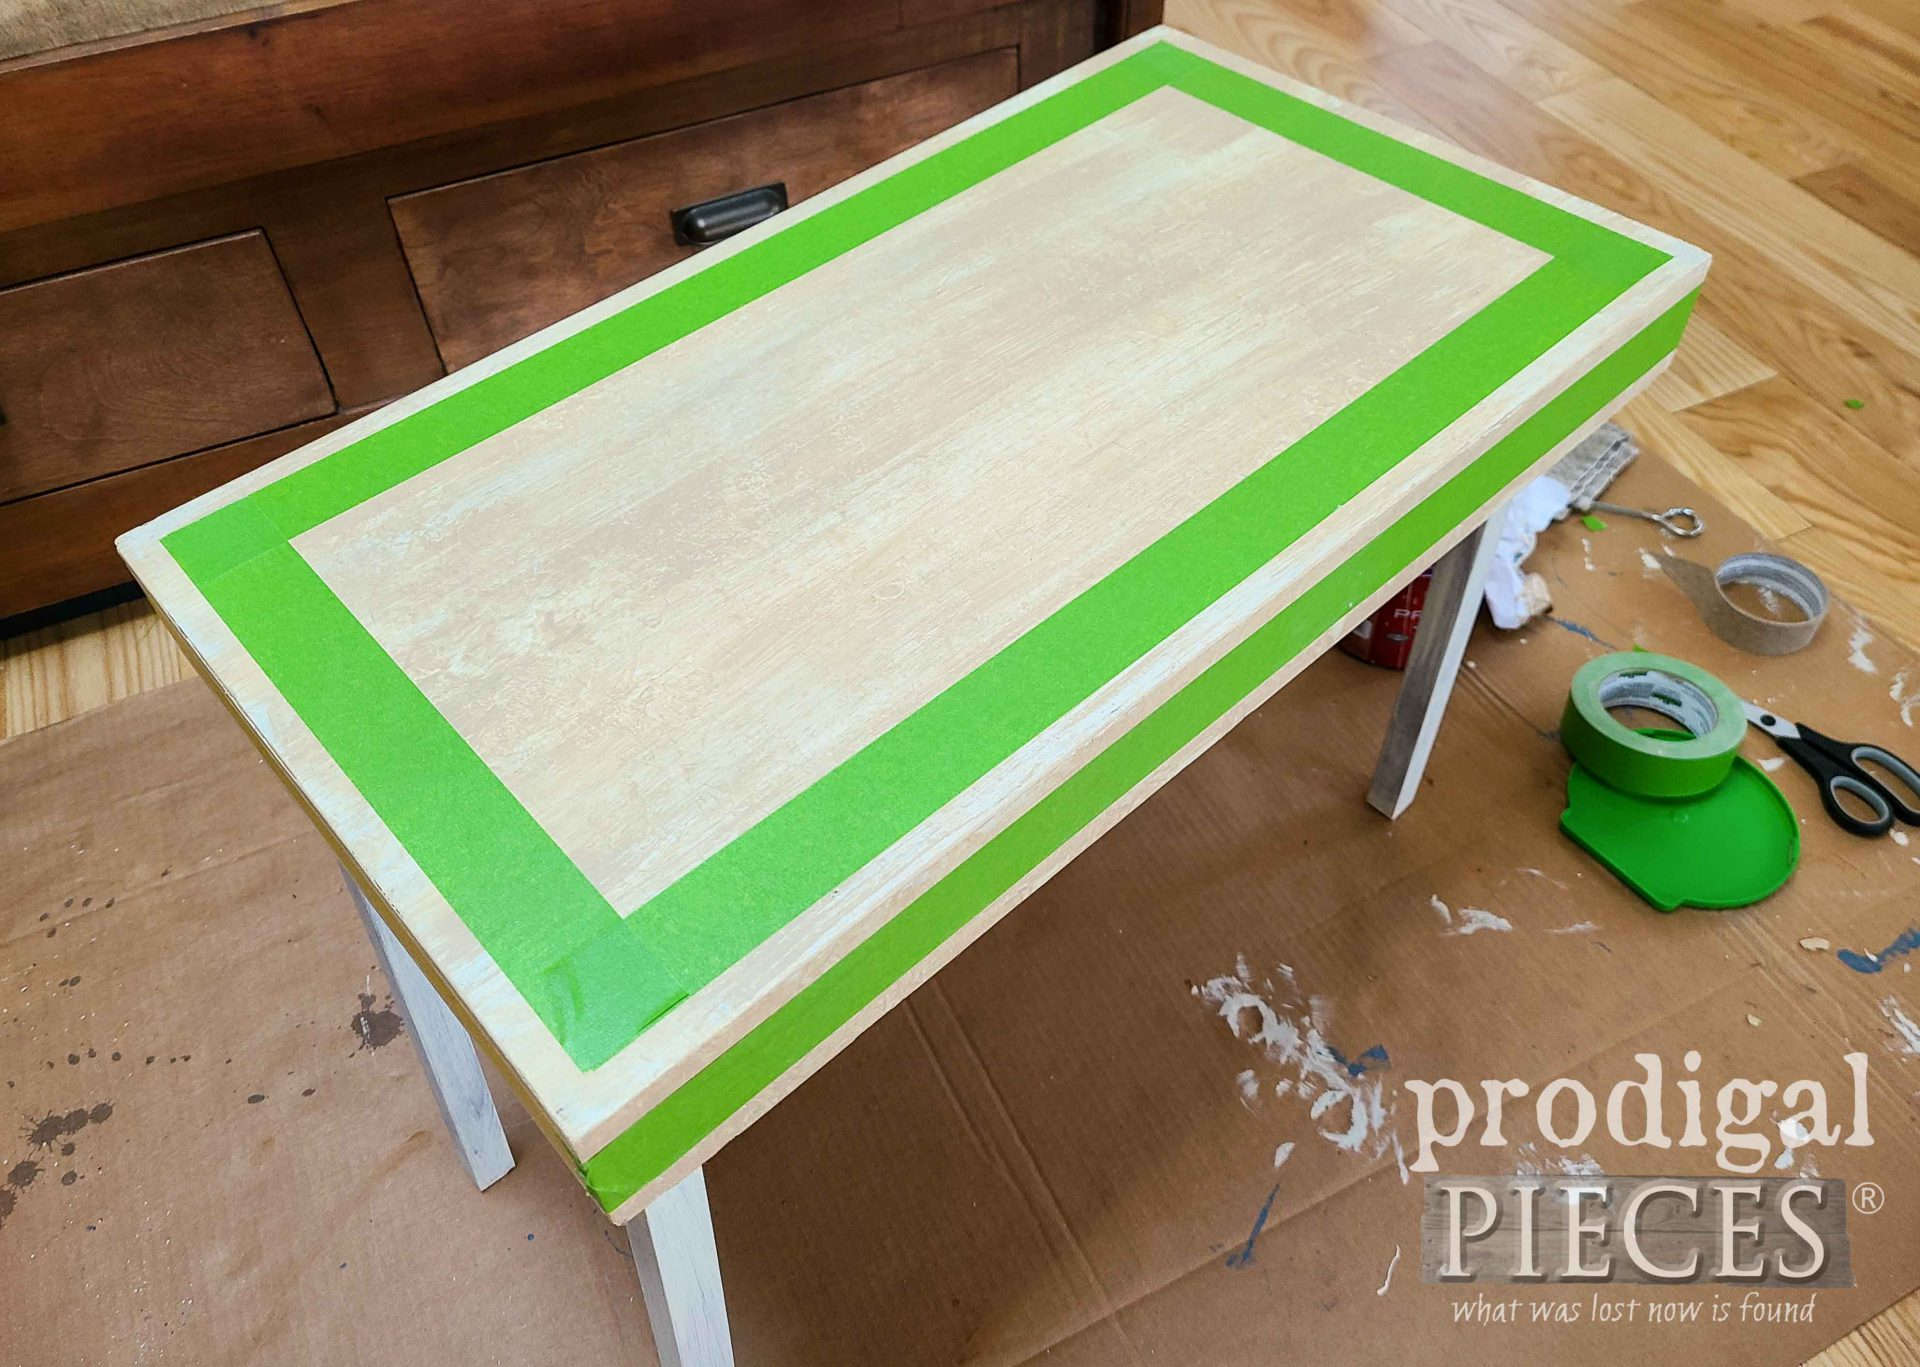 Taped Off Folding Table | prodigalpieces.com